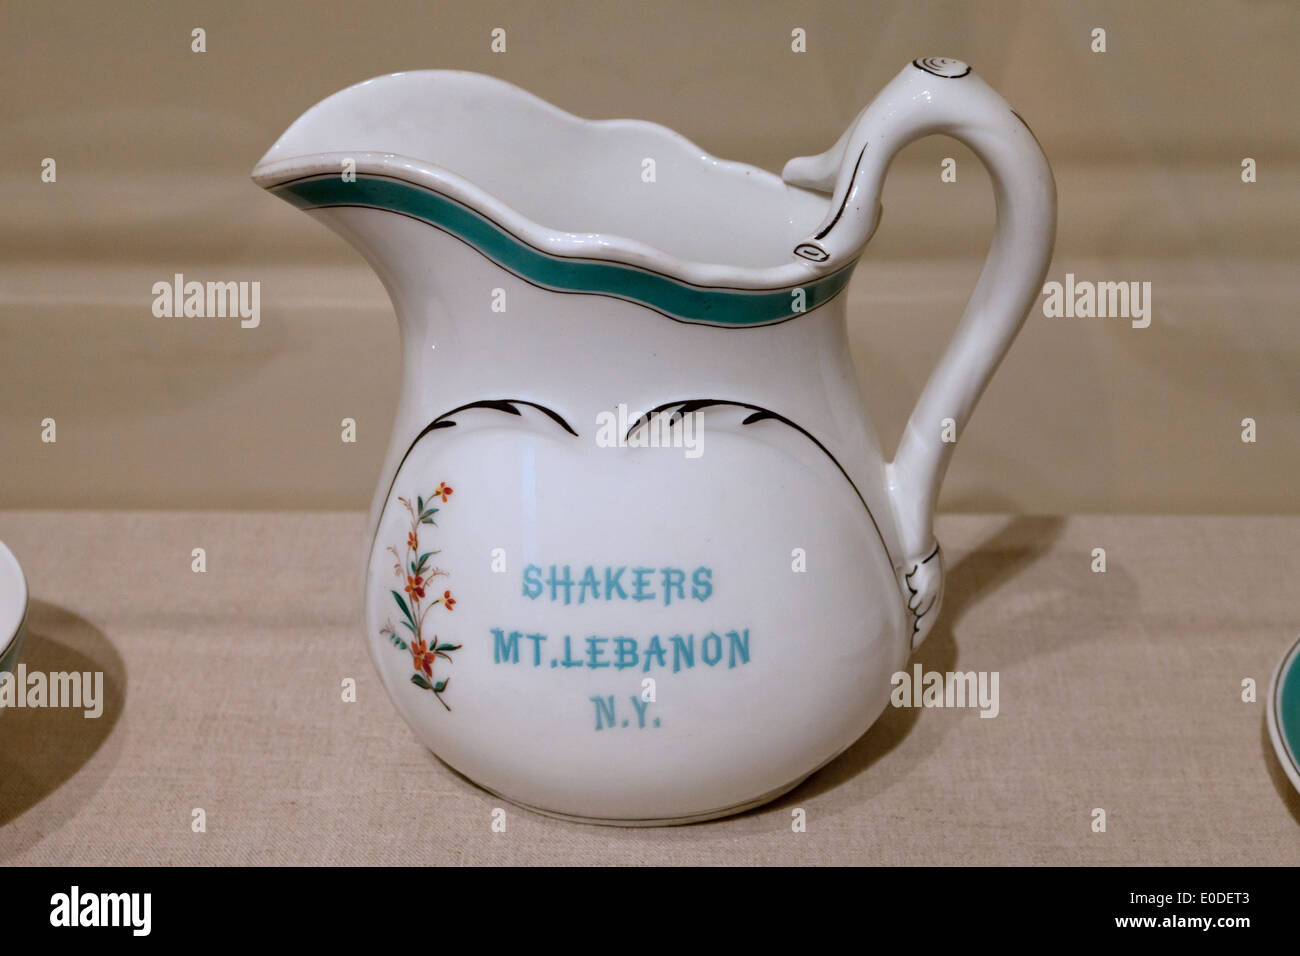 Antique Shakers porcelain pitcher - c. 1886 - Stock Image